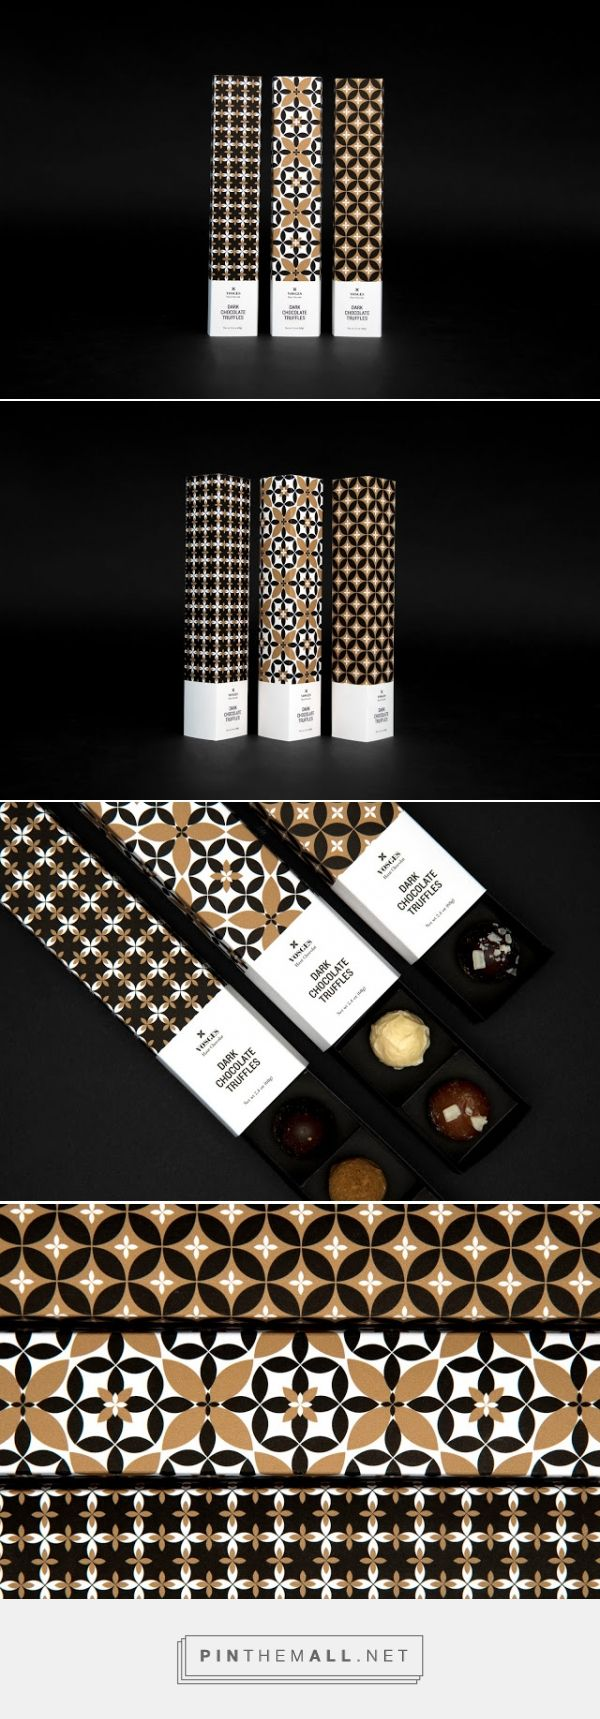 2318 best Chocolate packaging images on Pinterest | Chocolate ...